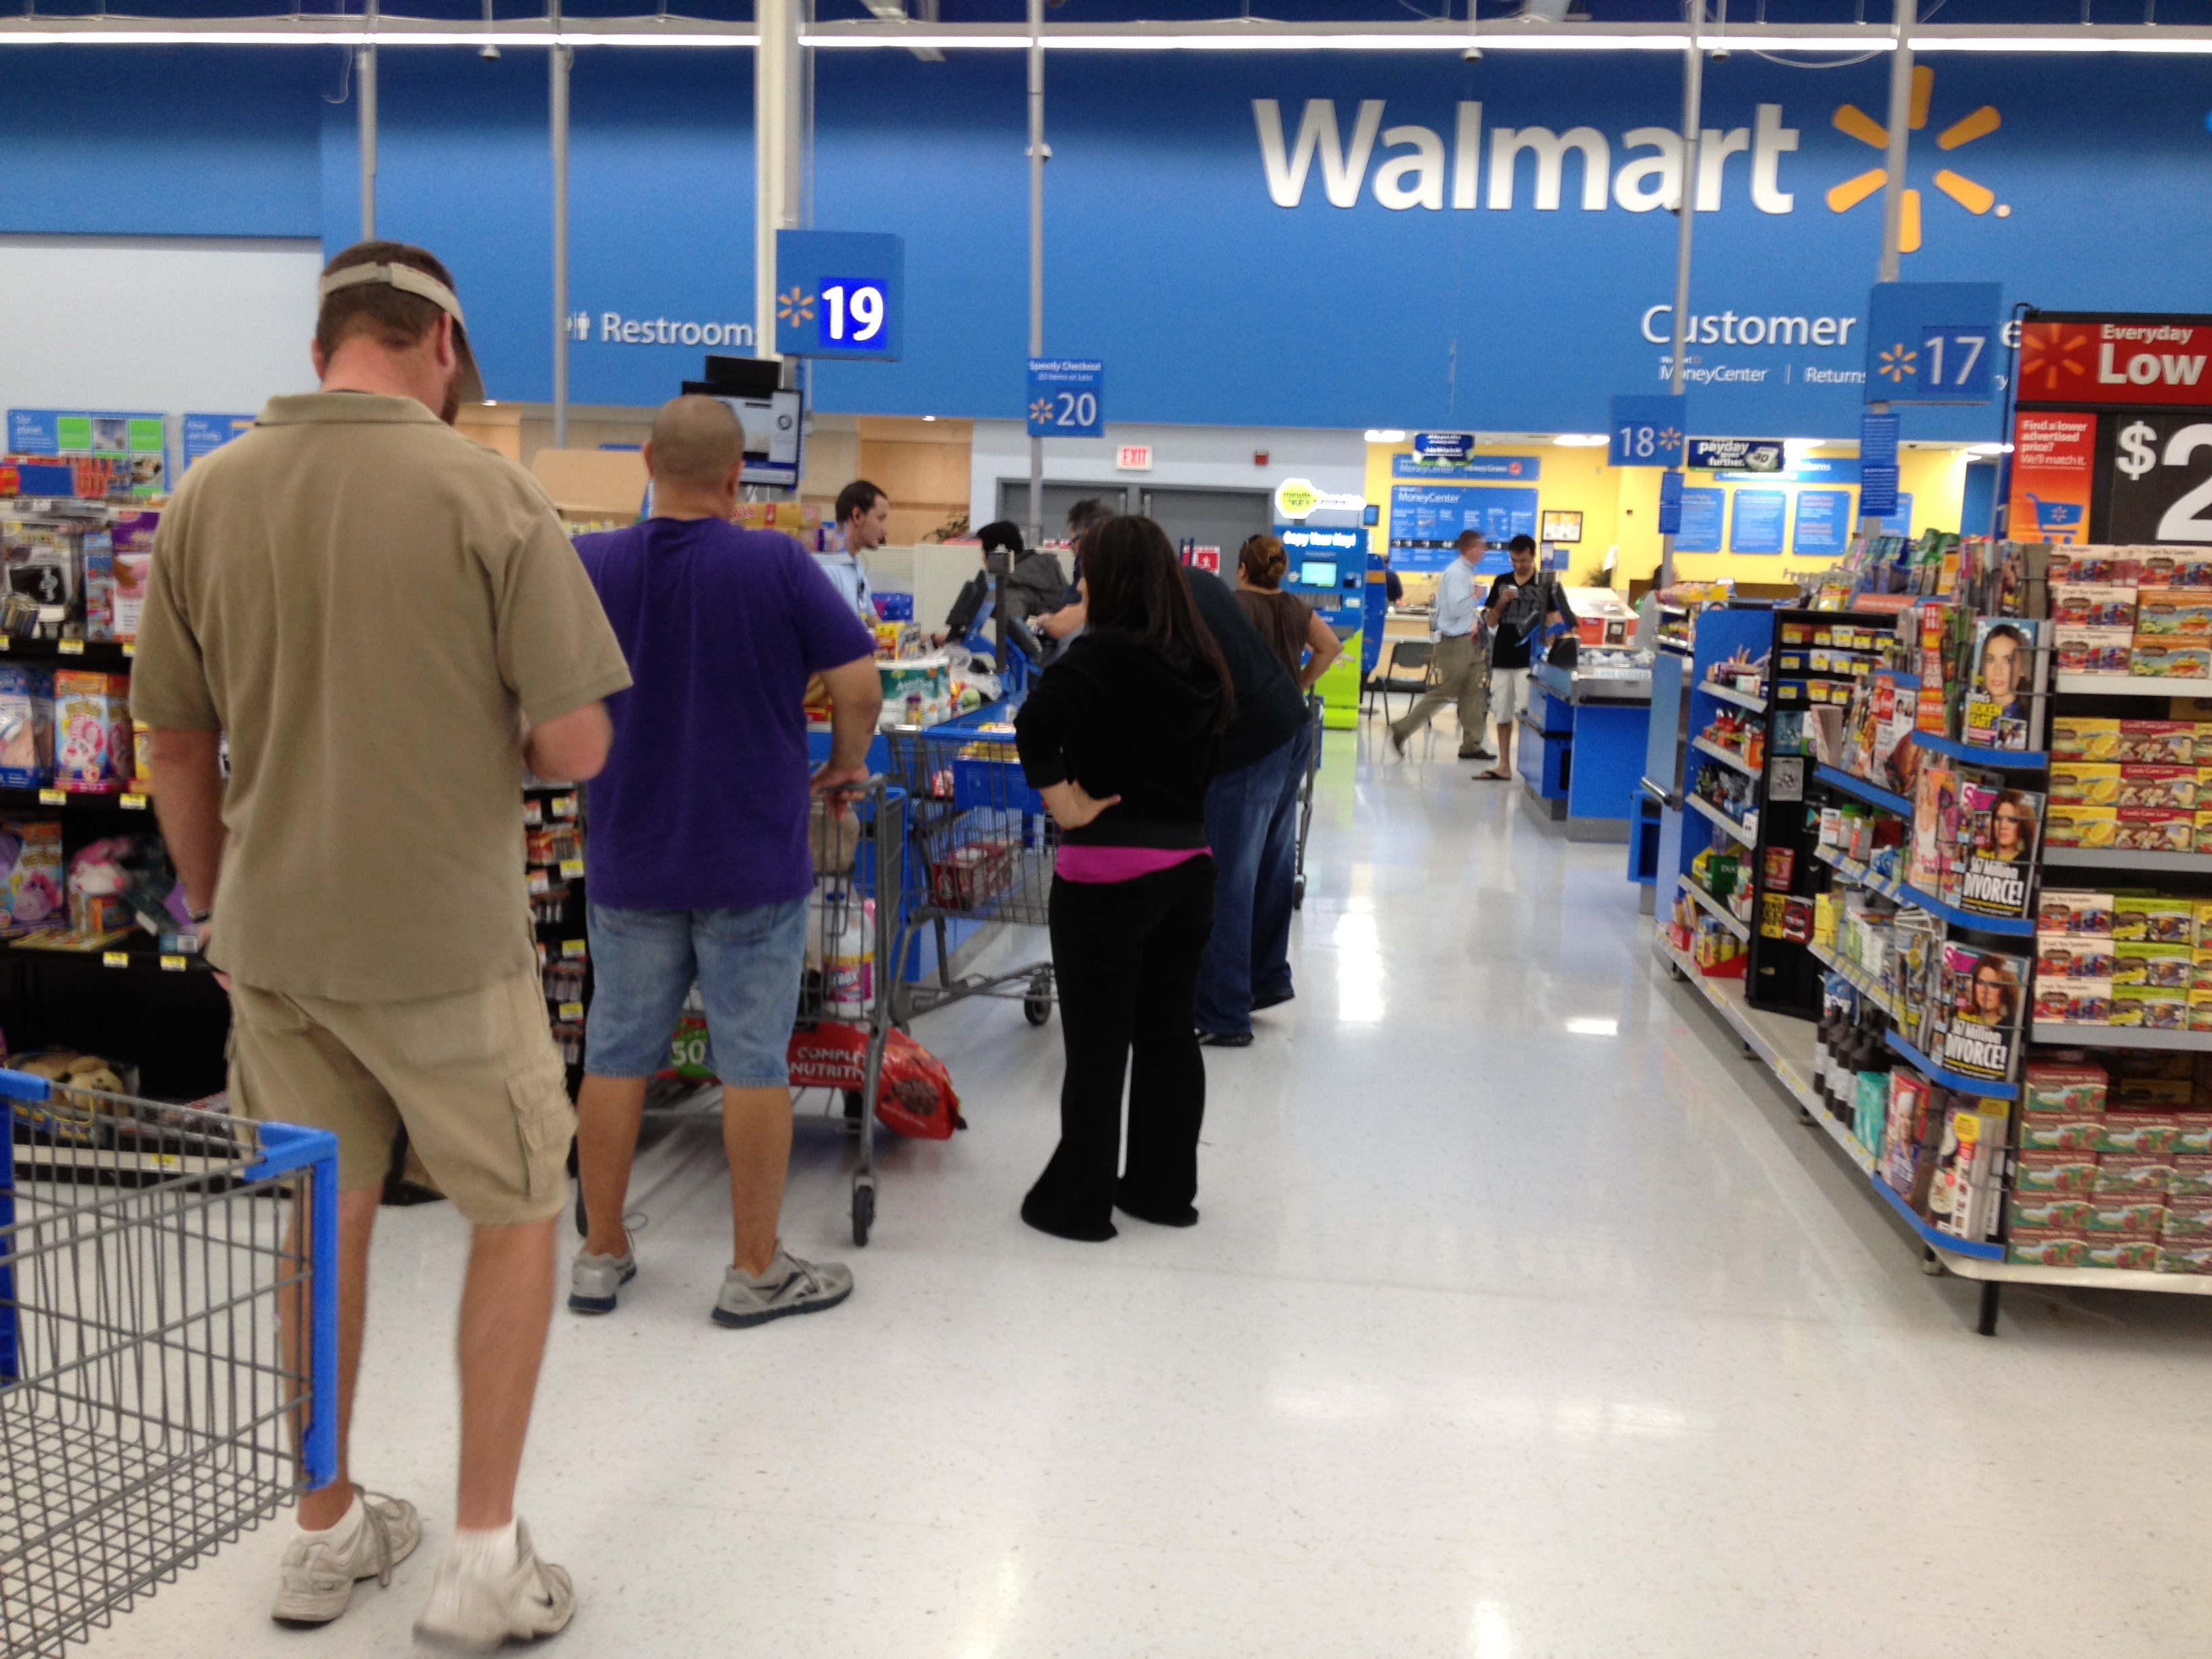 People Of Walmart Why So Serious A typical walmart in the us | 3264 x 2448 jpeg 2217kB